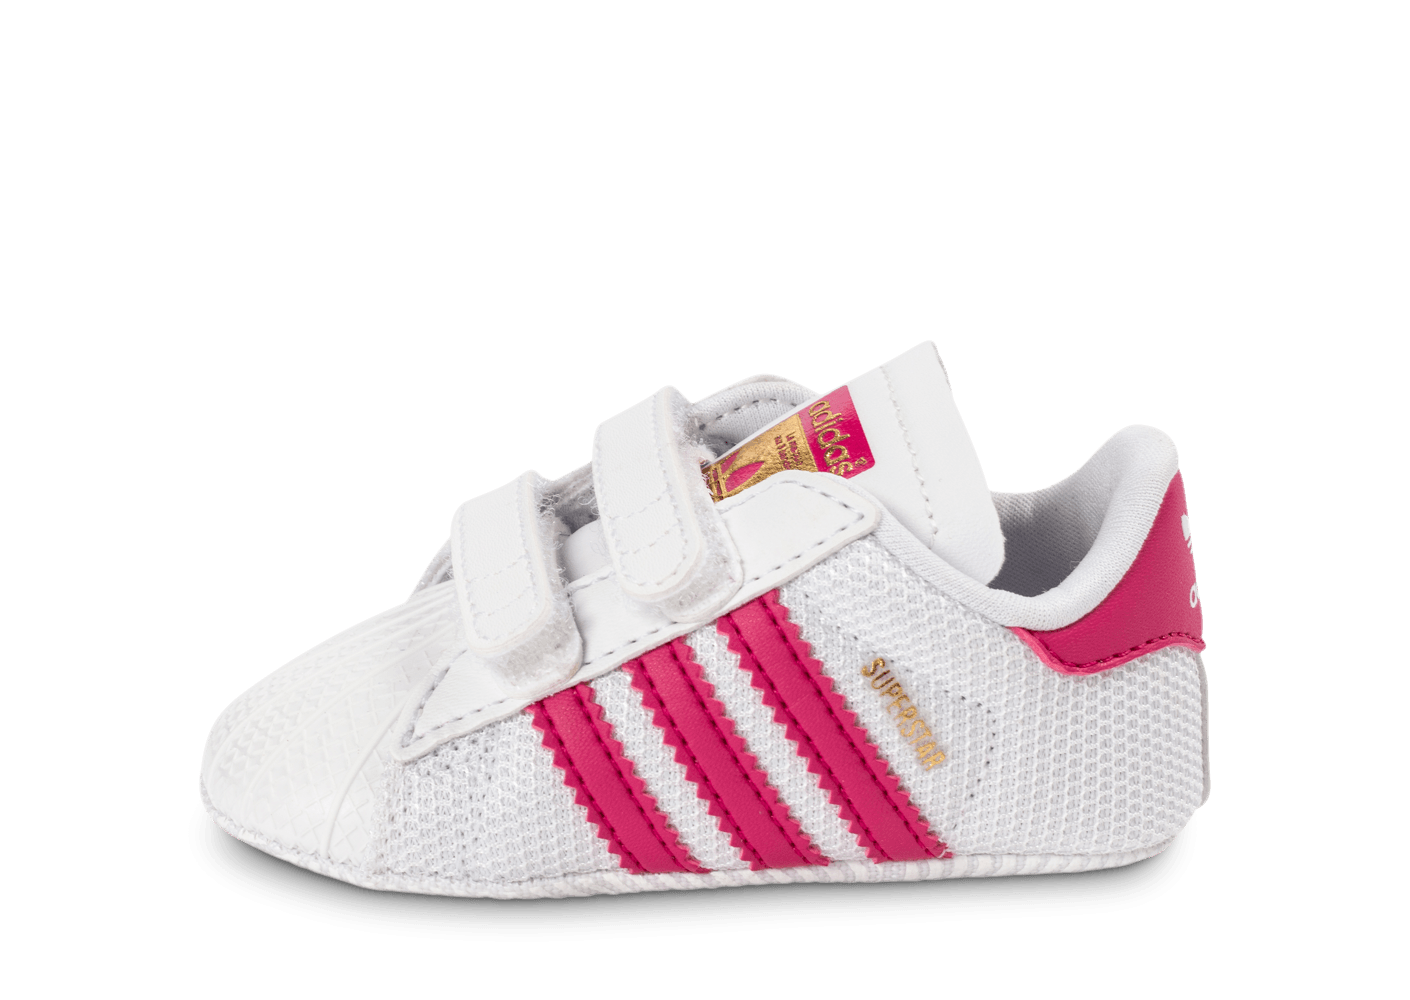 chaussures adidas femme superstar rose. Black Bedroom Furniture Sets. Home Design Ideas